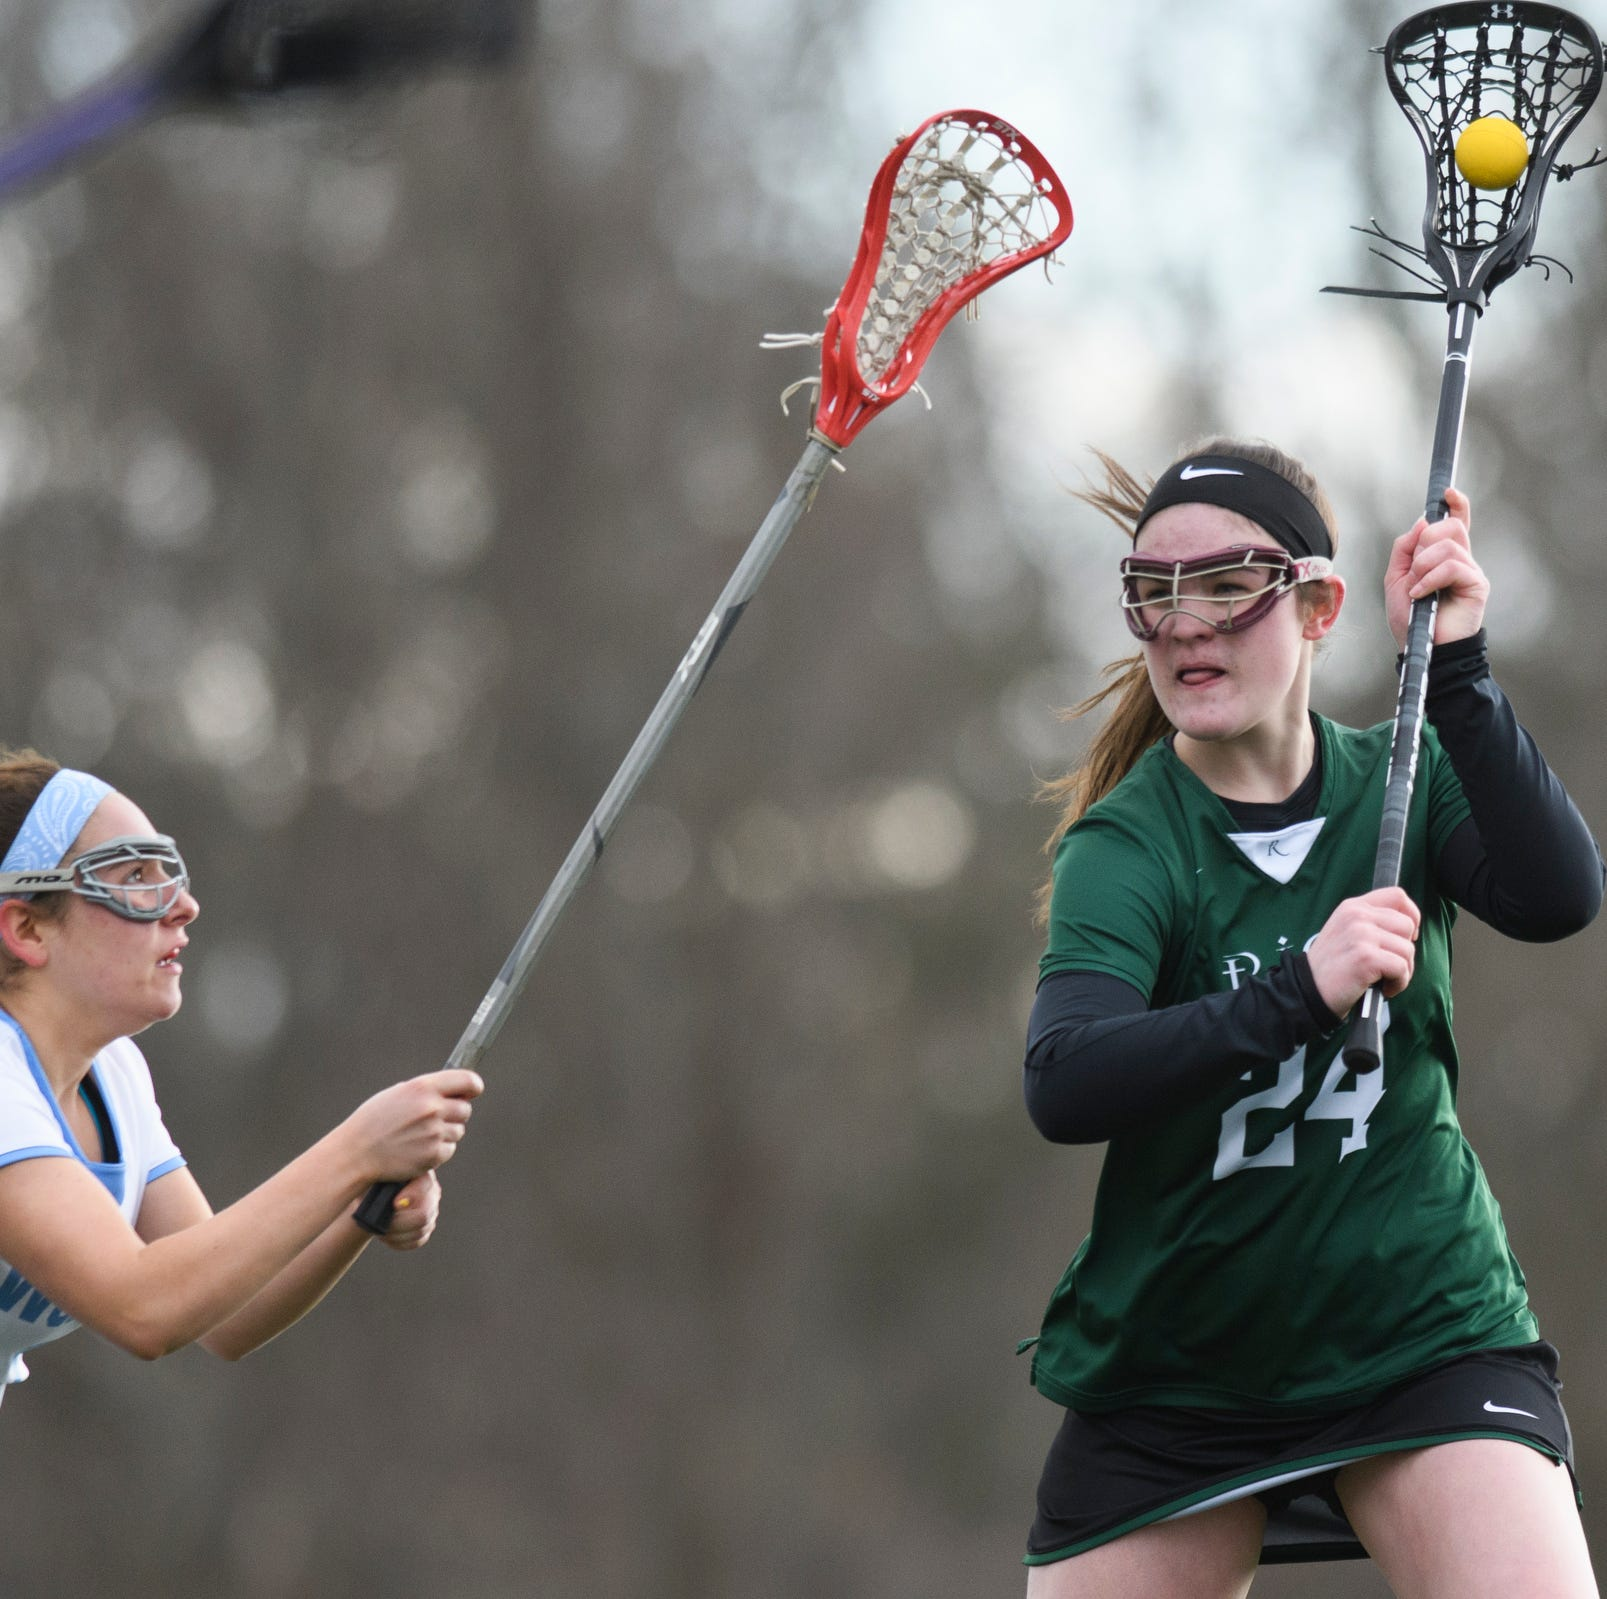 Monday's H.S. highlights: Rice knocks off Essex in girls lacrosse